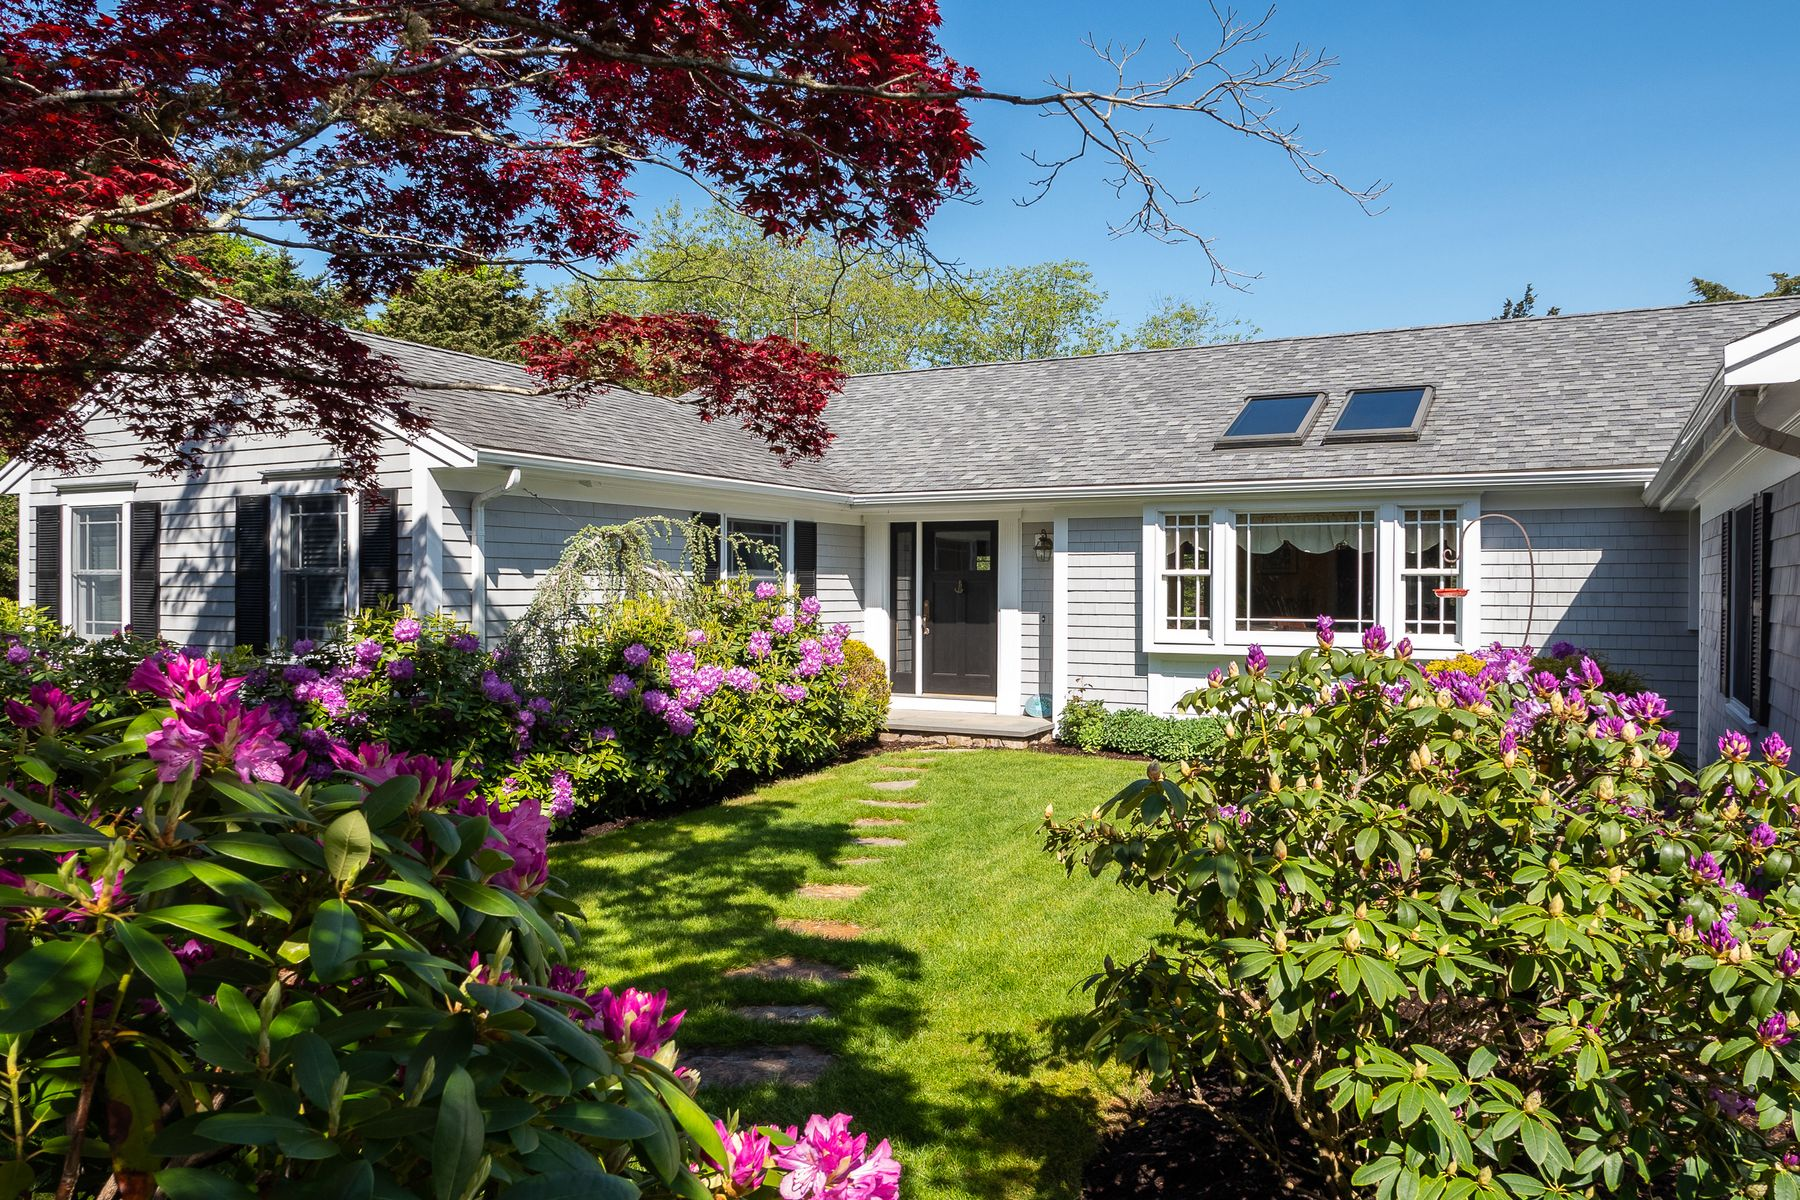 Single Family Homes for Sale at 23 Deely Lane, West Falmouth, MA 23 Deely Lane West Falmouth, Massachusetts 02574 United States